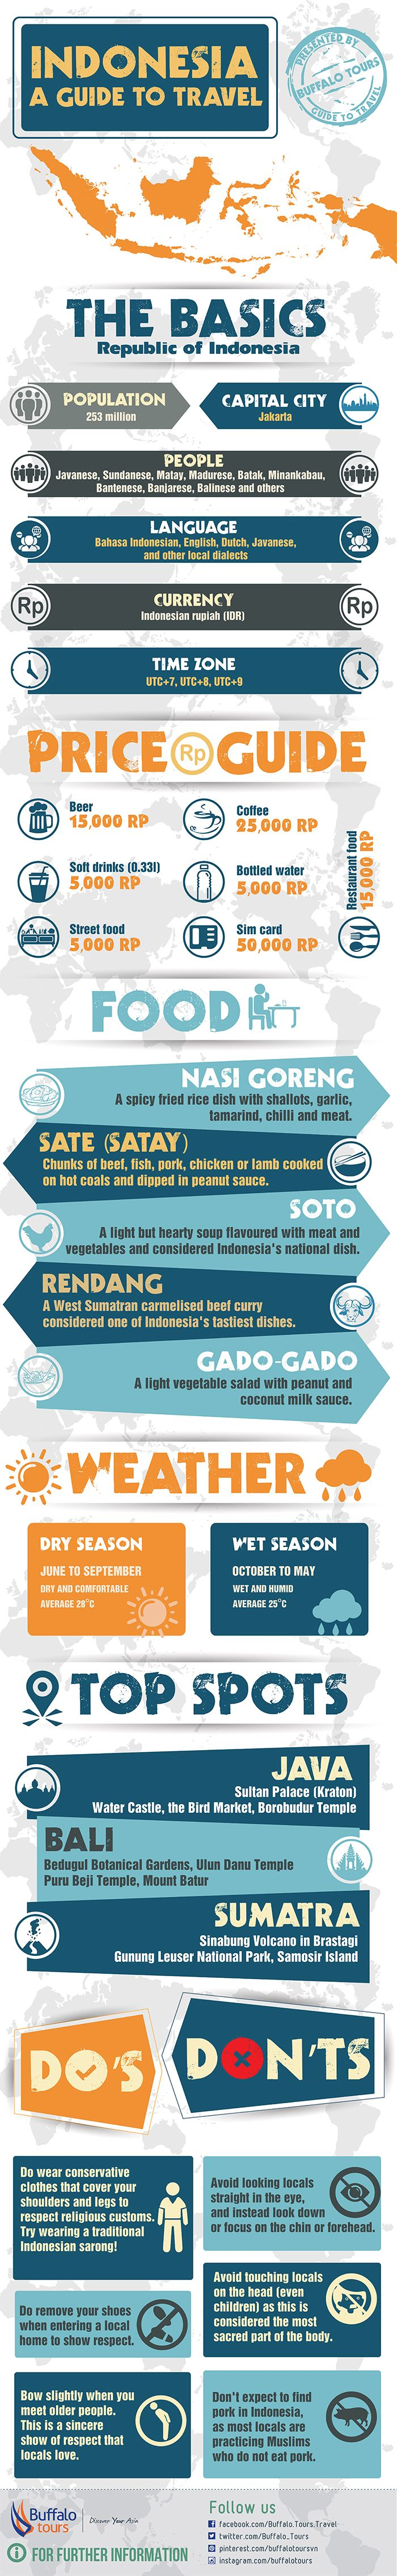 With over 70,000 tropical islands and more cultures than we can count, Indonesia may be one of the easiest travel destinations to put on your bucket list, but one of the hardest to plan for. We've made that process one step easier with this useful travel infographic of must-know travel tips for Indonesia